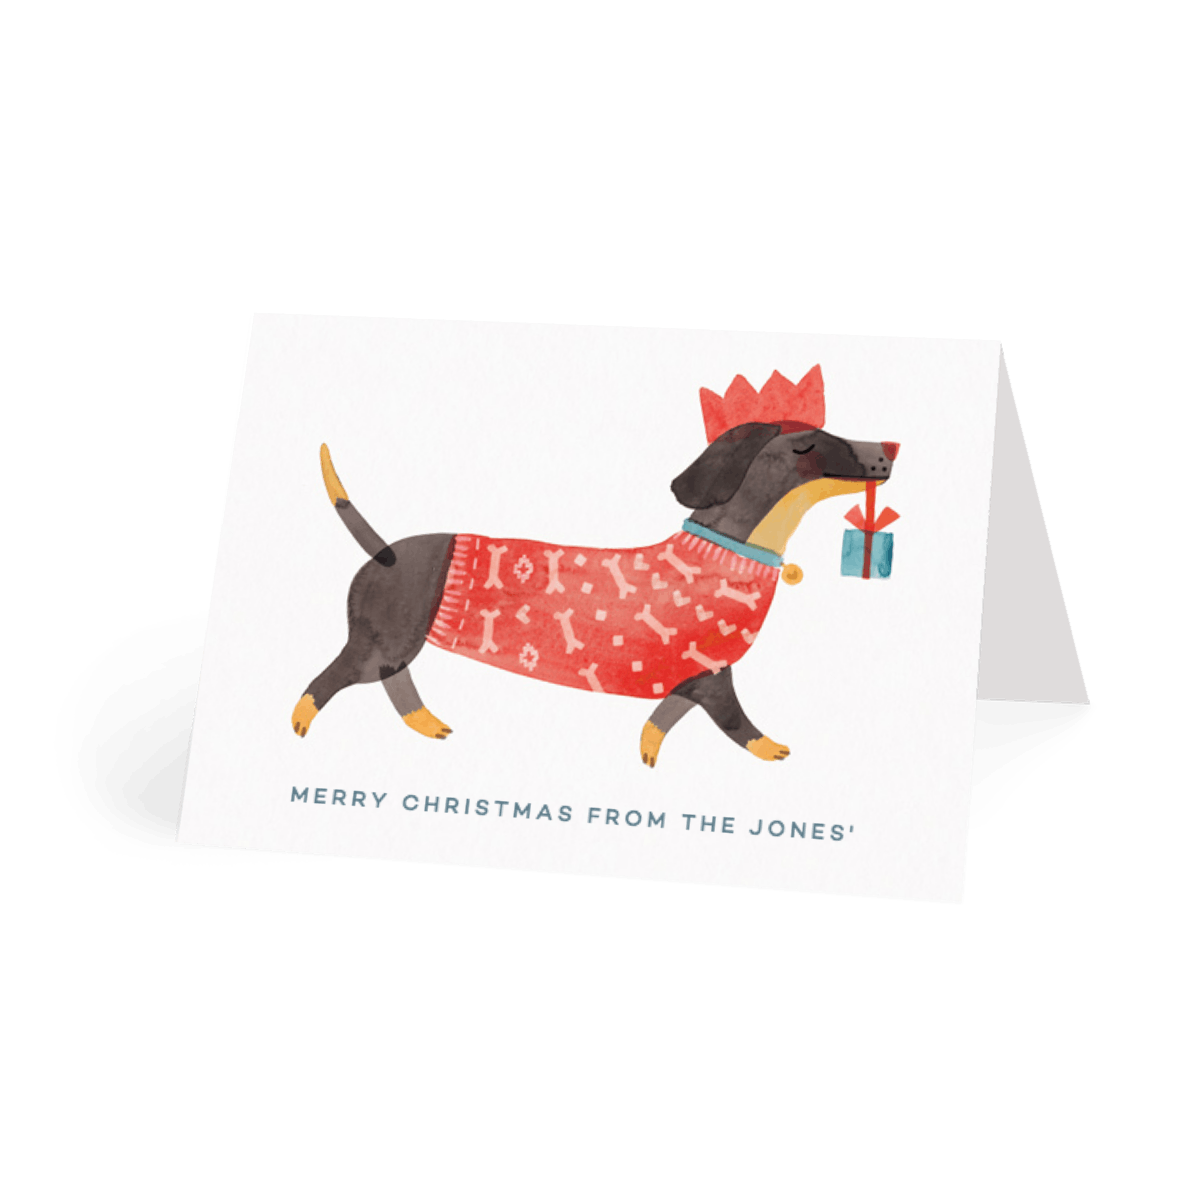 Https%3a%2f%2fwww.papier.com%2fproduct image%2f88764%2f14%2fchristmas dachshund 22351 front 1569430046.png?ixlib=rb 1.1